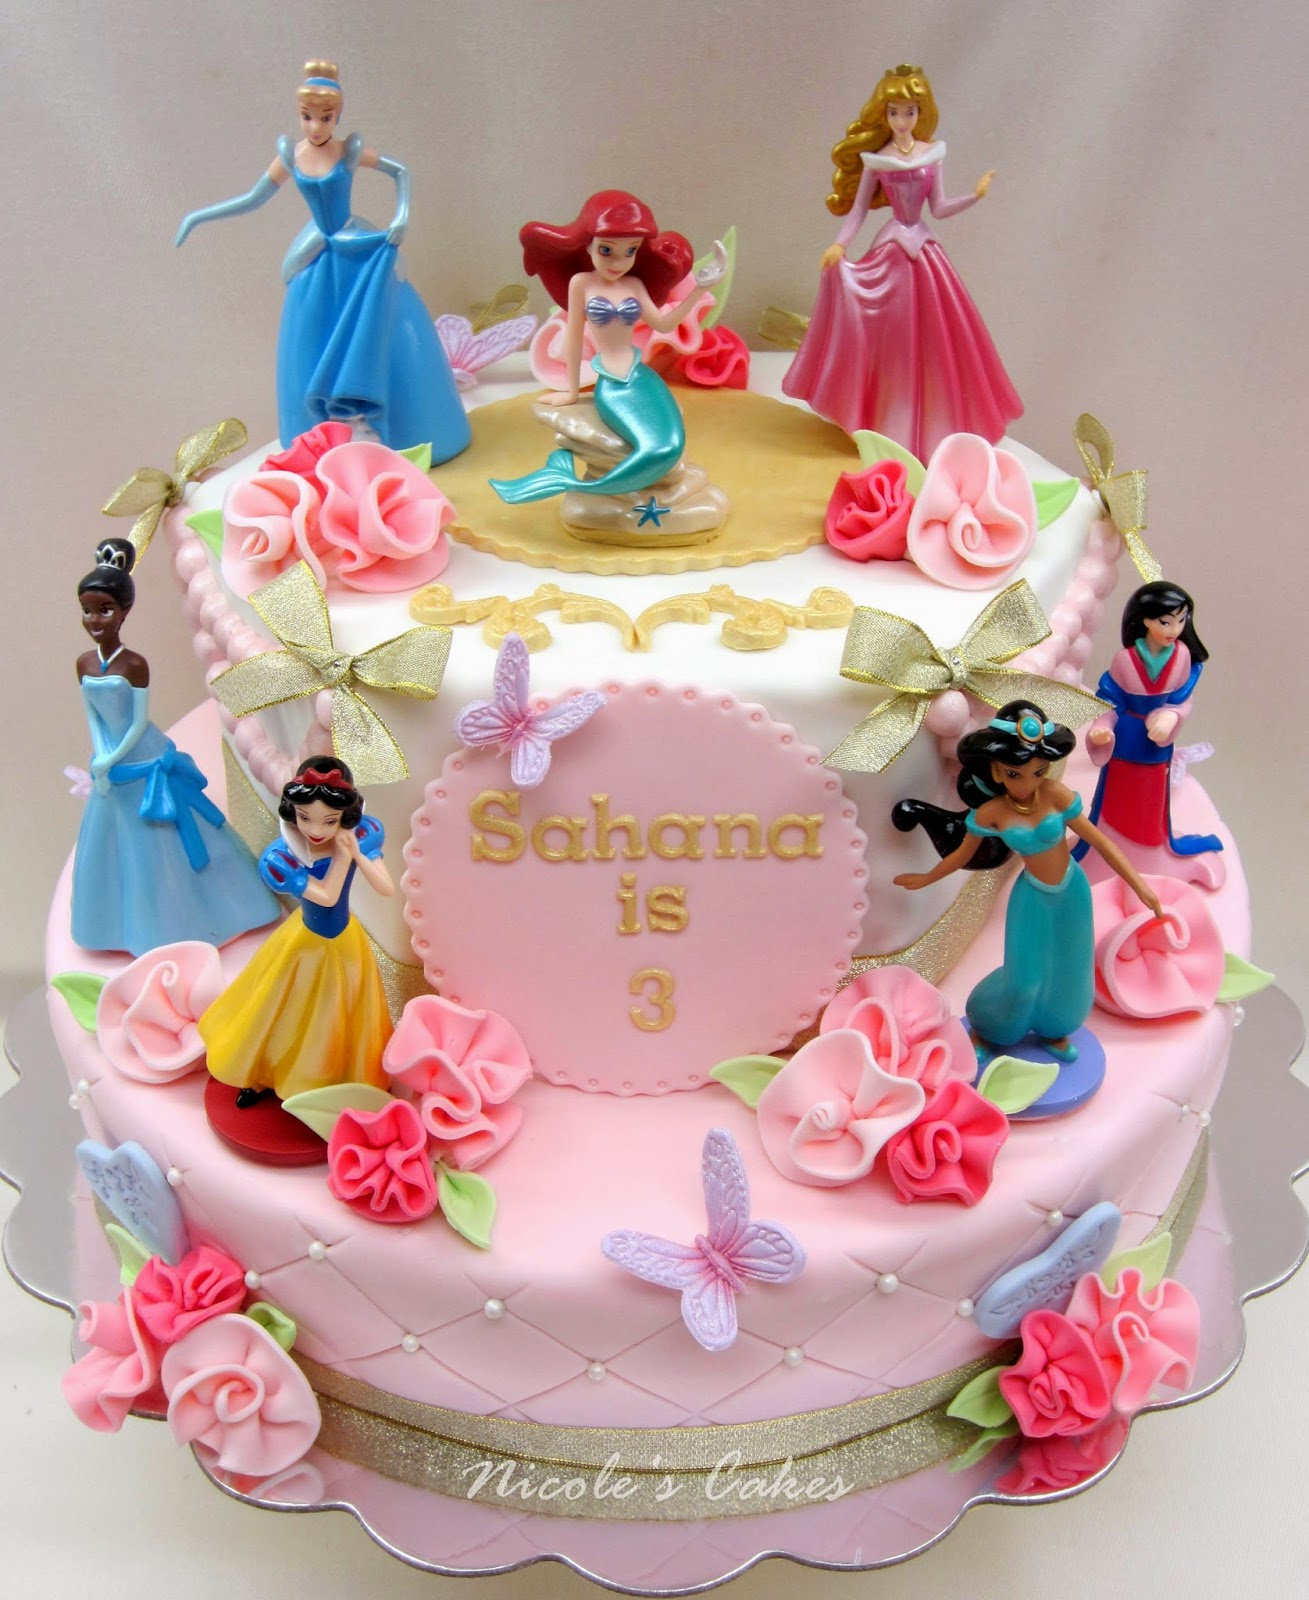 Confections Cakes Amp Creations Gorgeous Pink Princess Cake